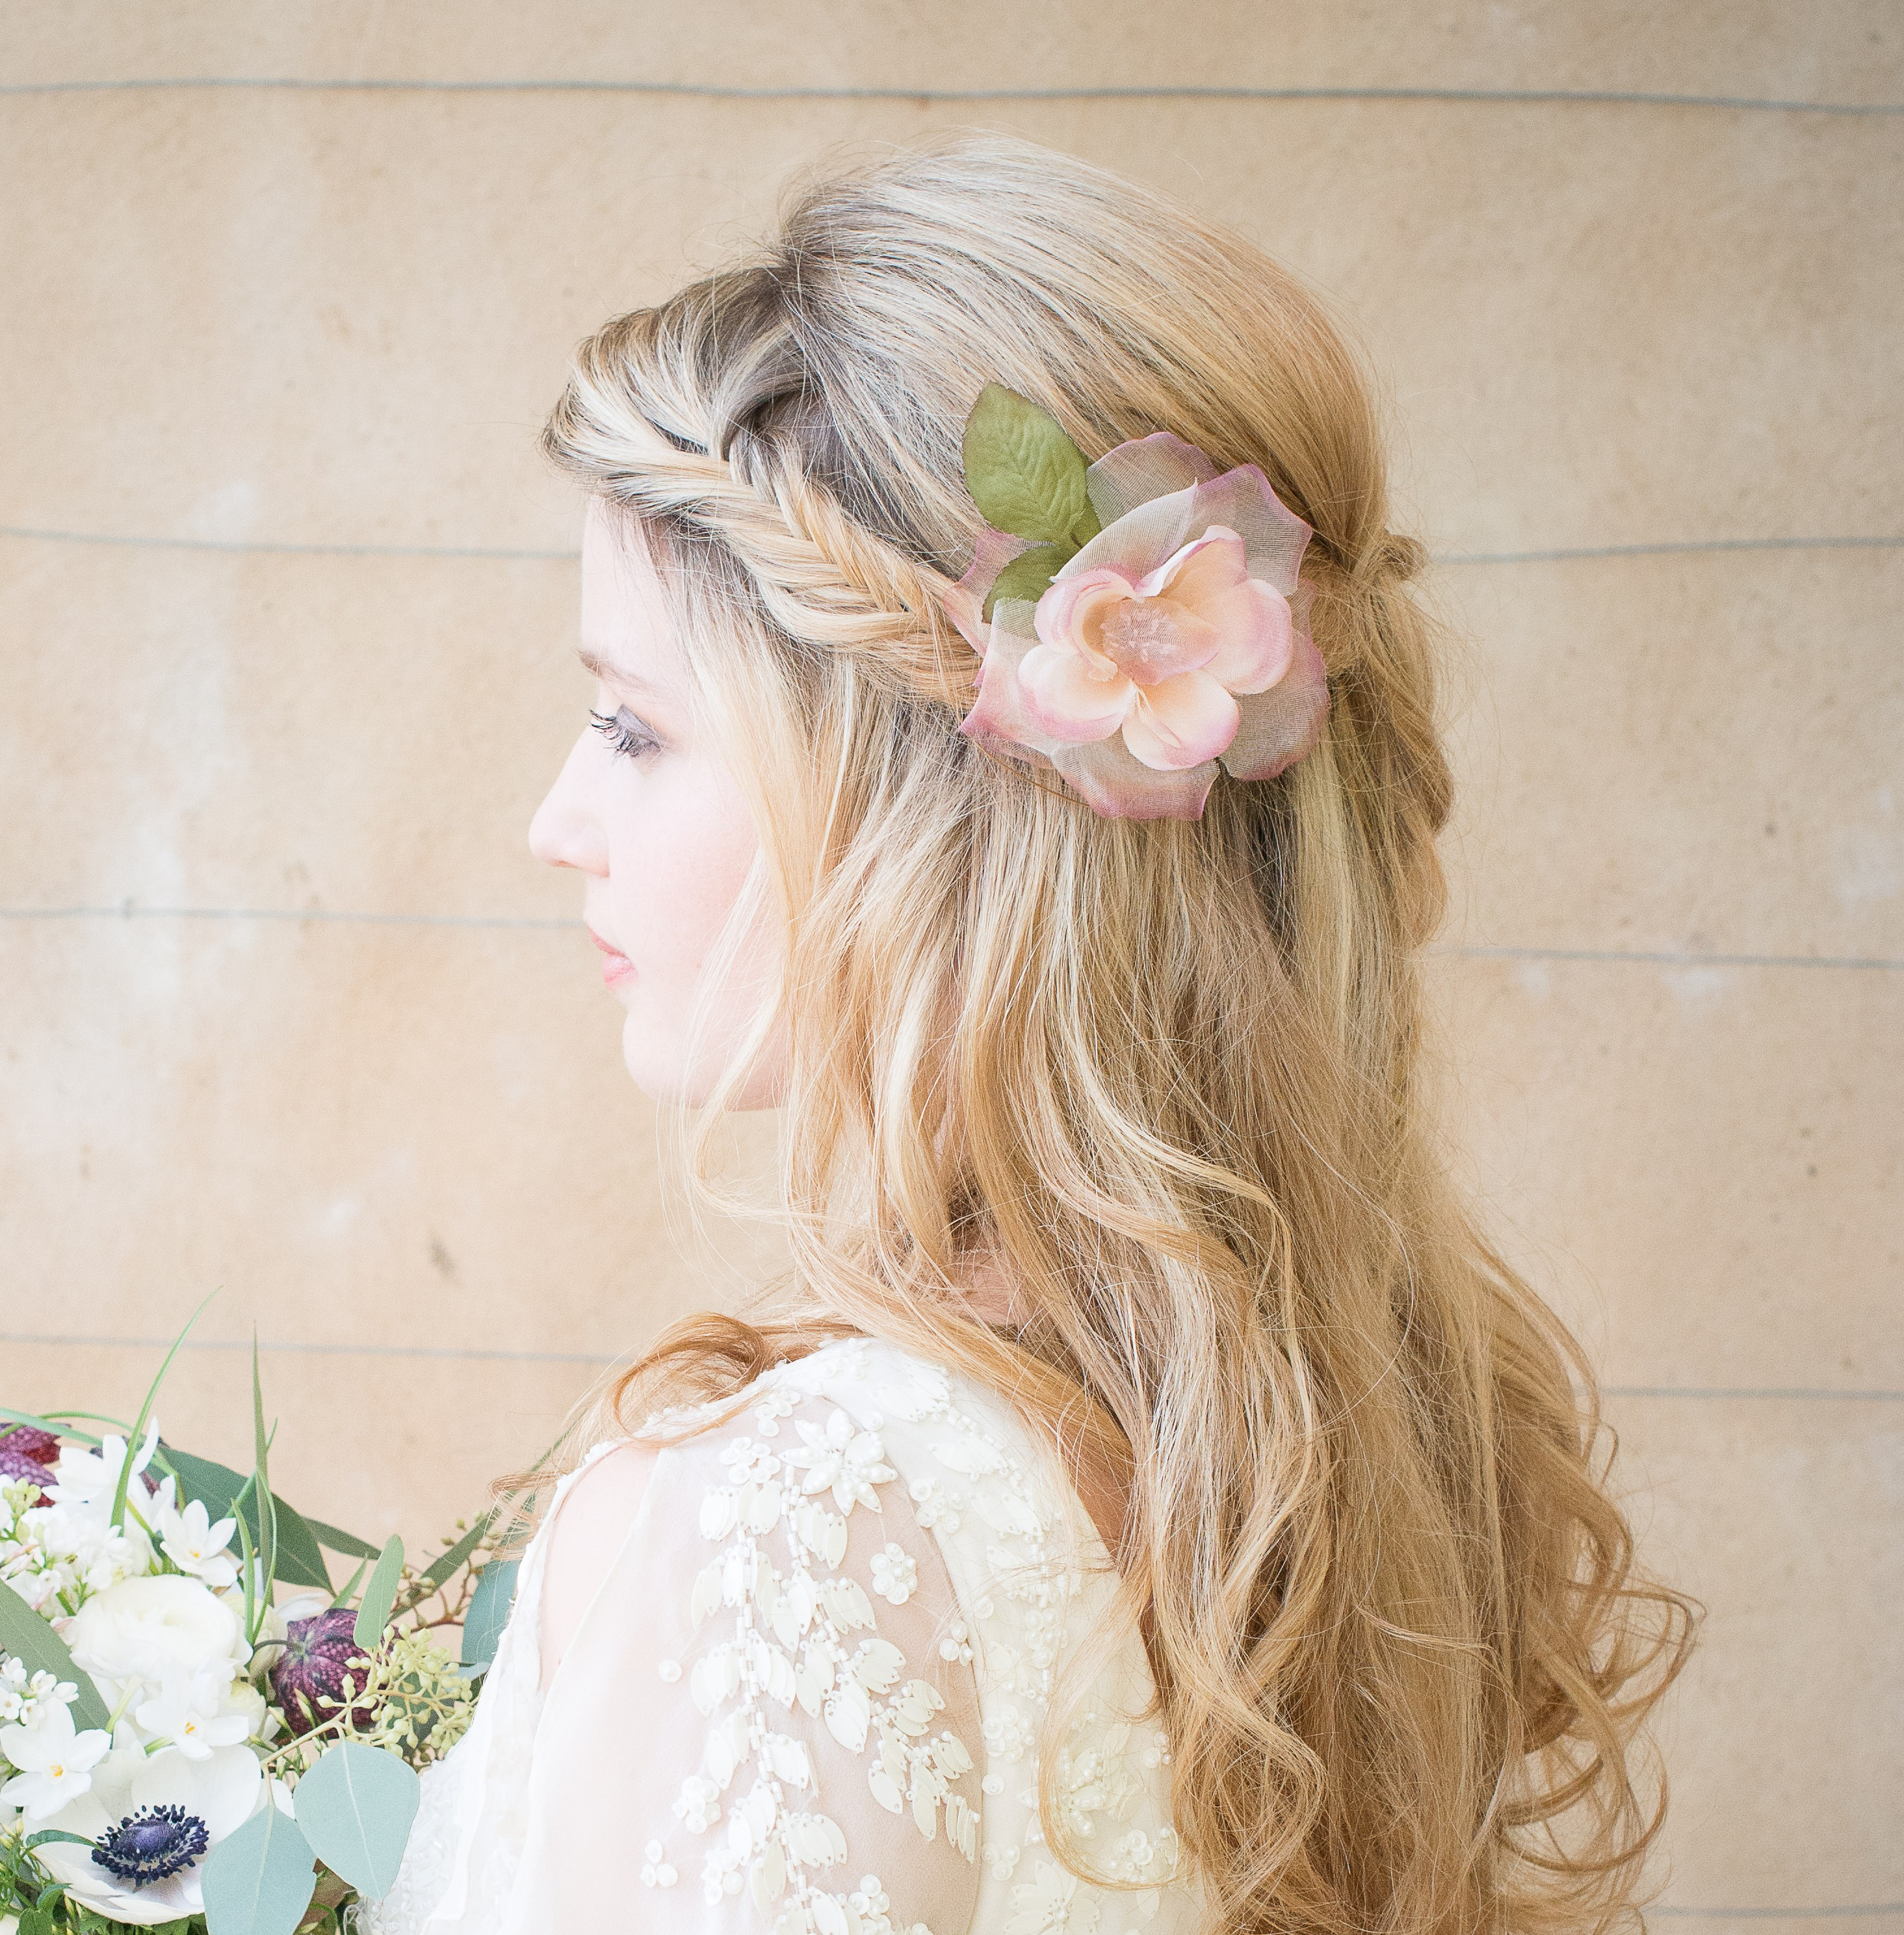 Wedding hair flowers add some beautiful flowers to your bridal hair